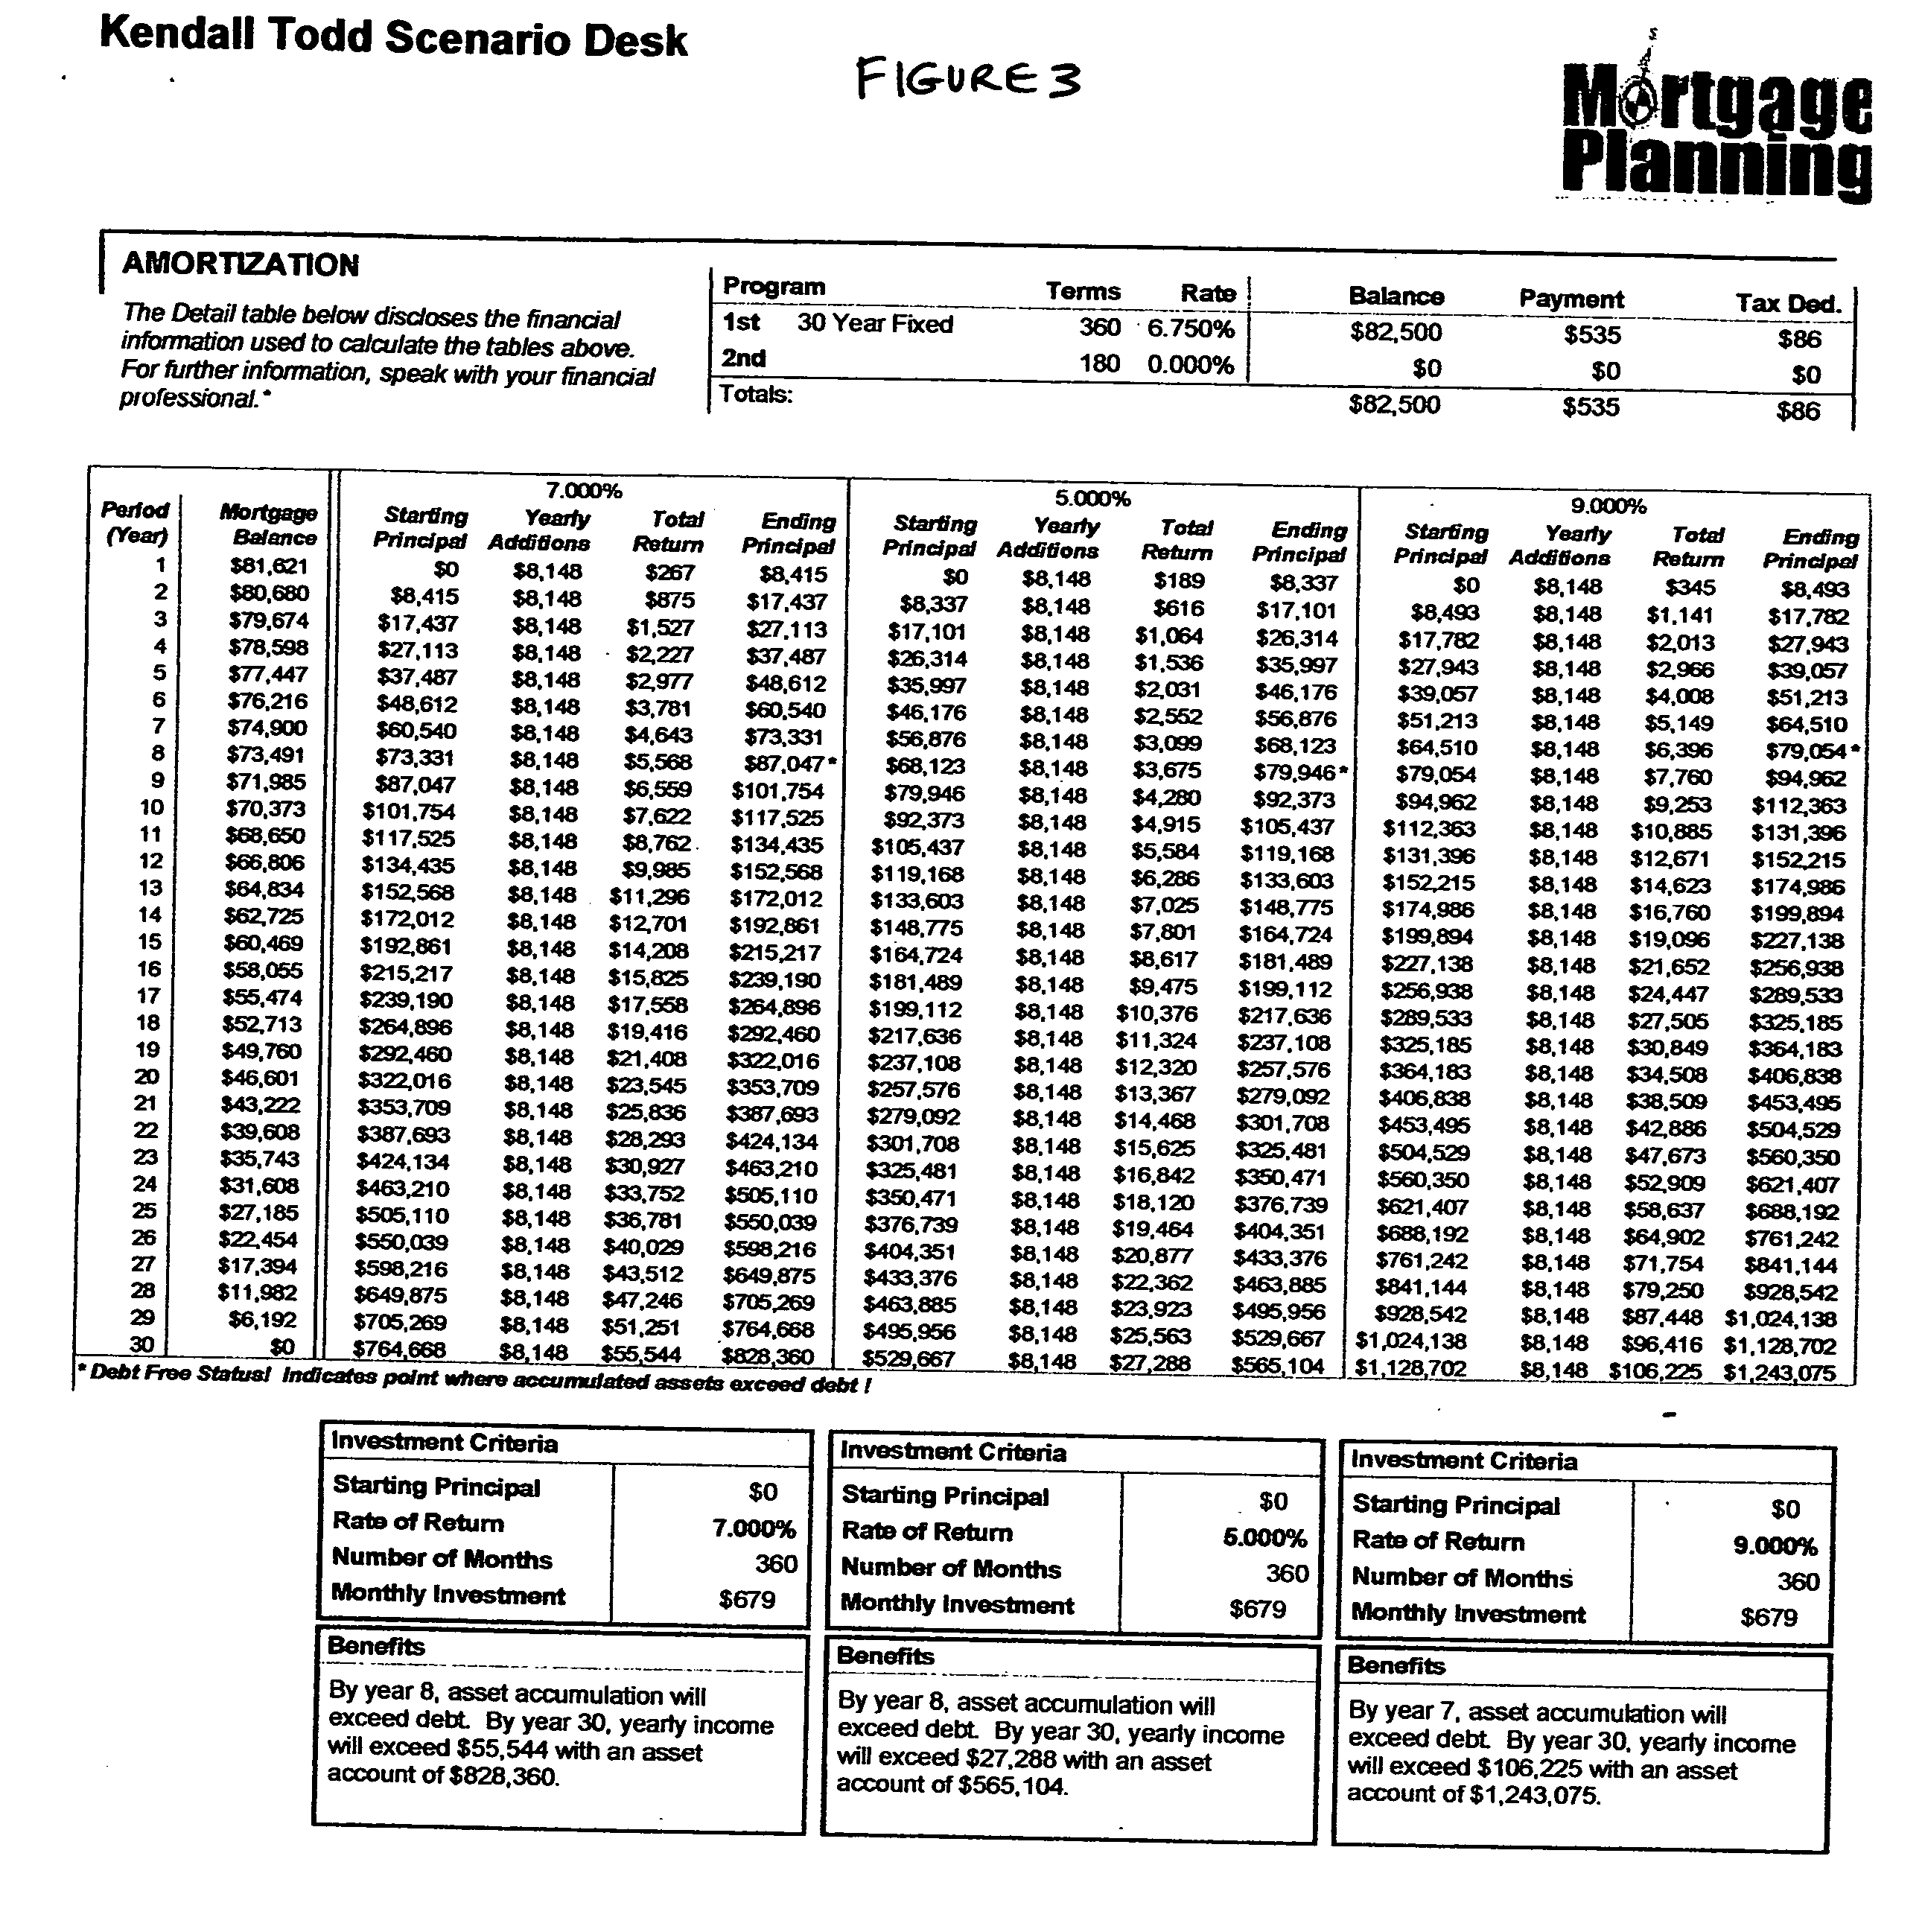 Assignment of mortgage system group